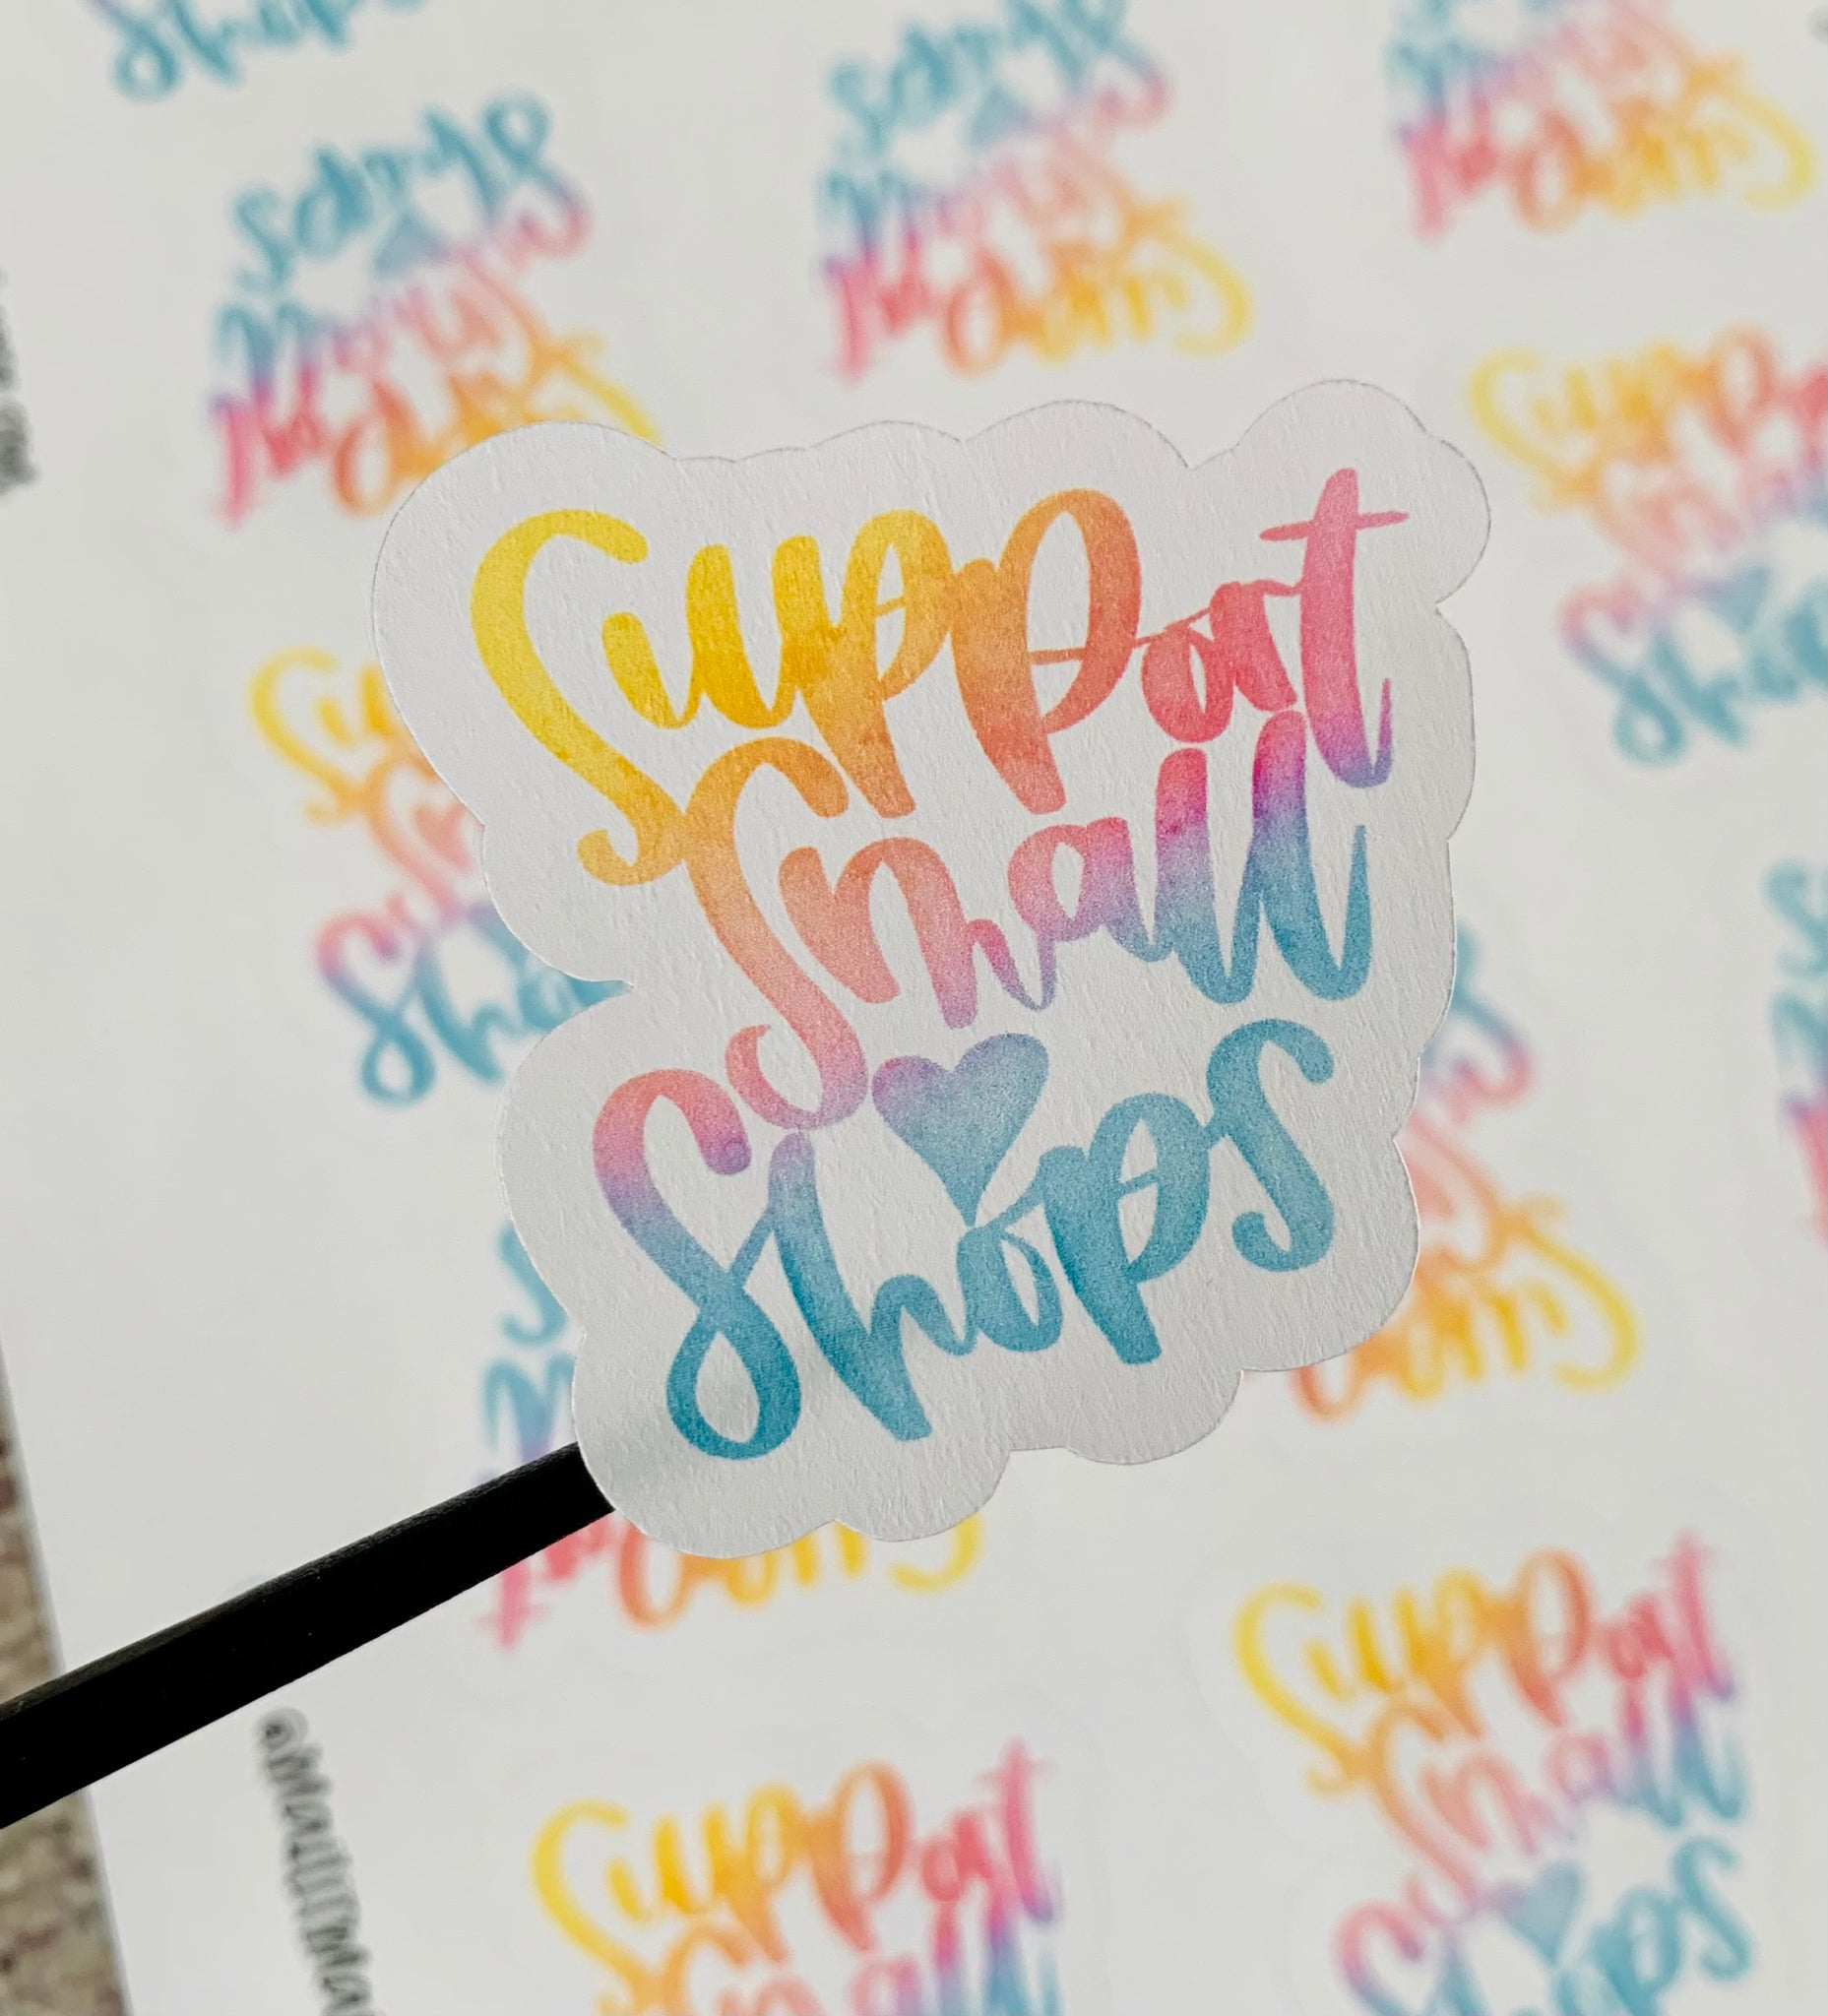 "2"" support small shops stickers - 15 stickers per sheet"